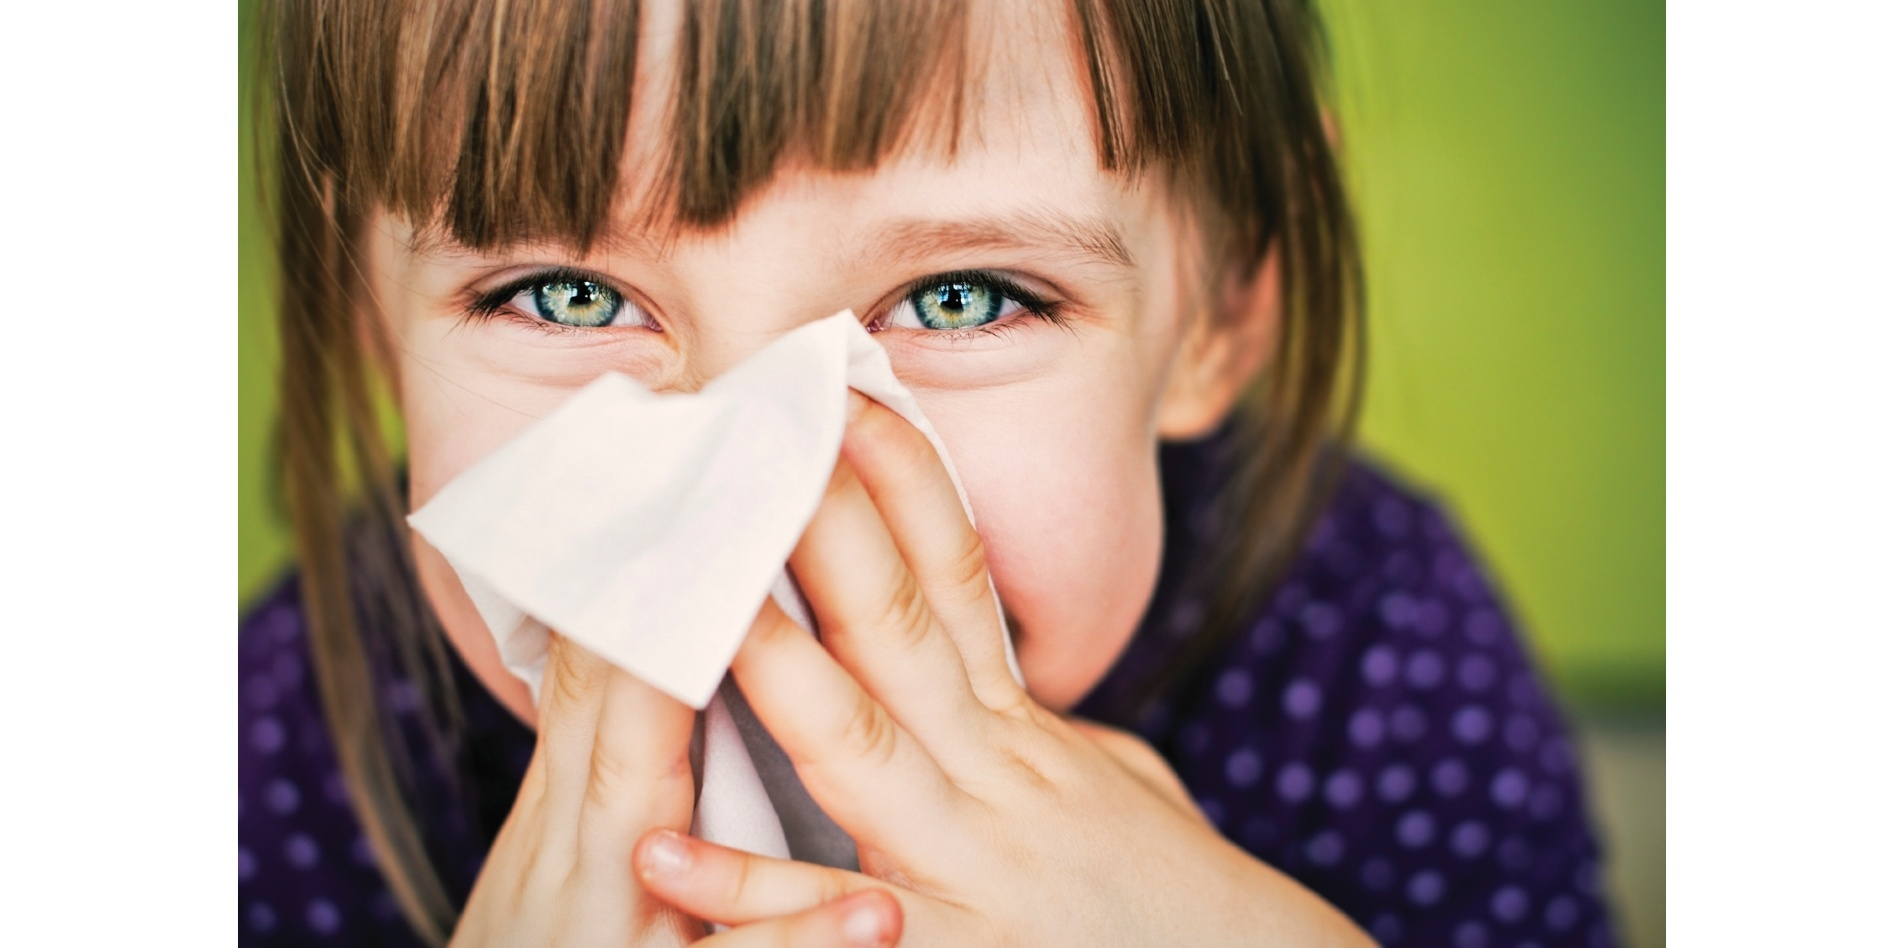 Food for Thought: A Current Look at Children's #Food #Allergies